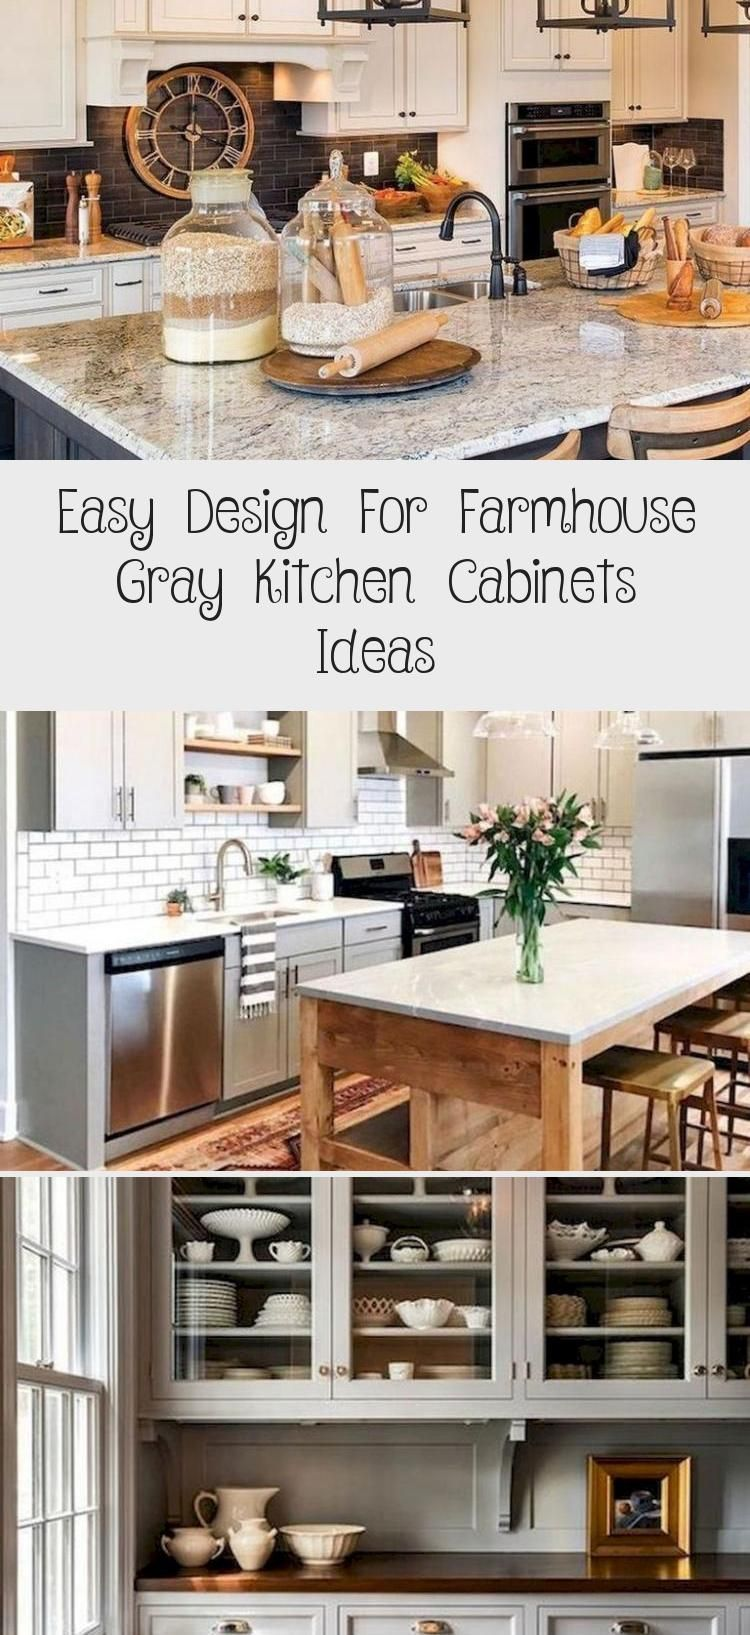 Easy Design For Farmhouse Gray Kitchen Cabinets Ideas Kitchendesign Kitchenrem Cabinets Design In 2020 Grey Kitchen Cabinets Grey Kitchen Coffee Bars In Kitchen